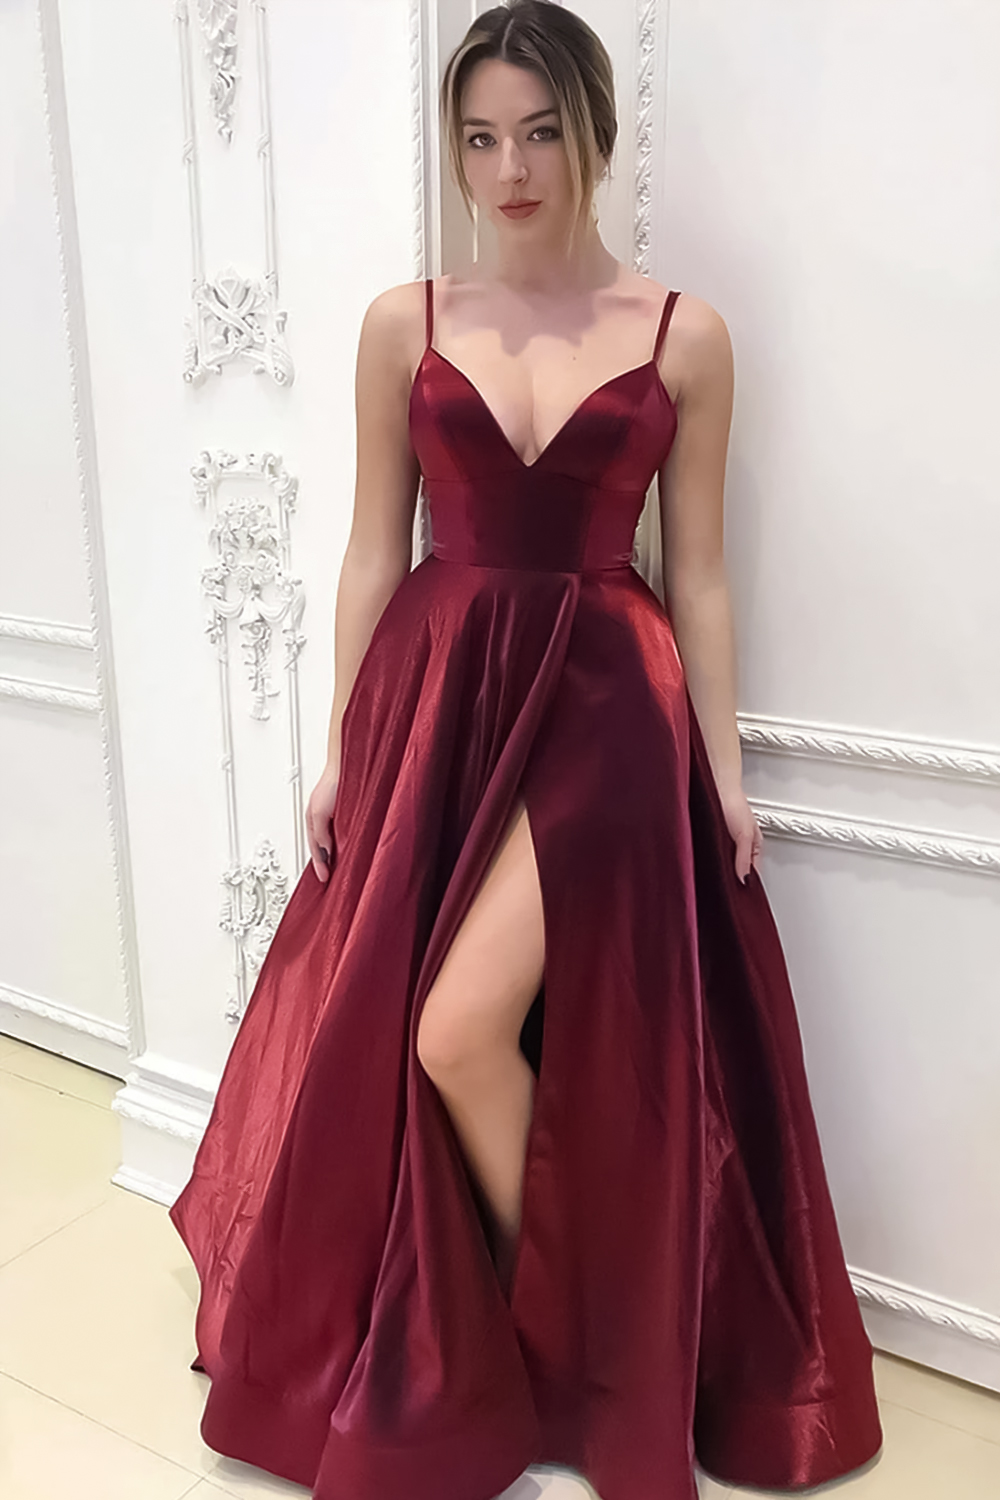 woman in a floor-lengh evening dress is posing in the ball room